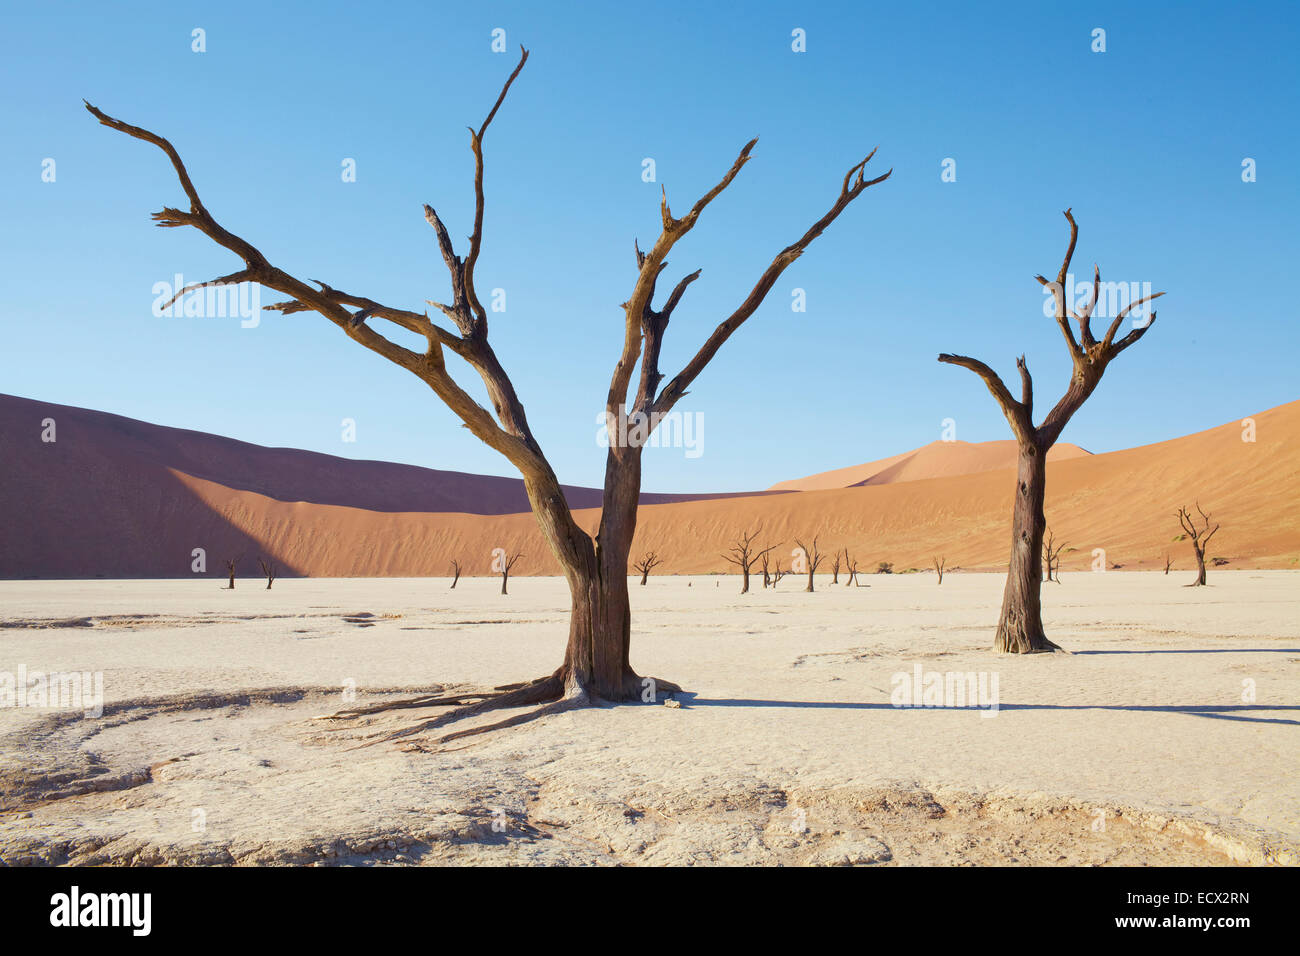 View of bare trees, sand dunes and blue sky in sunny desert - Stock Image